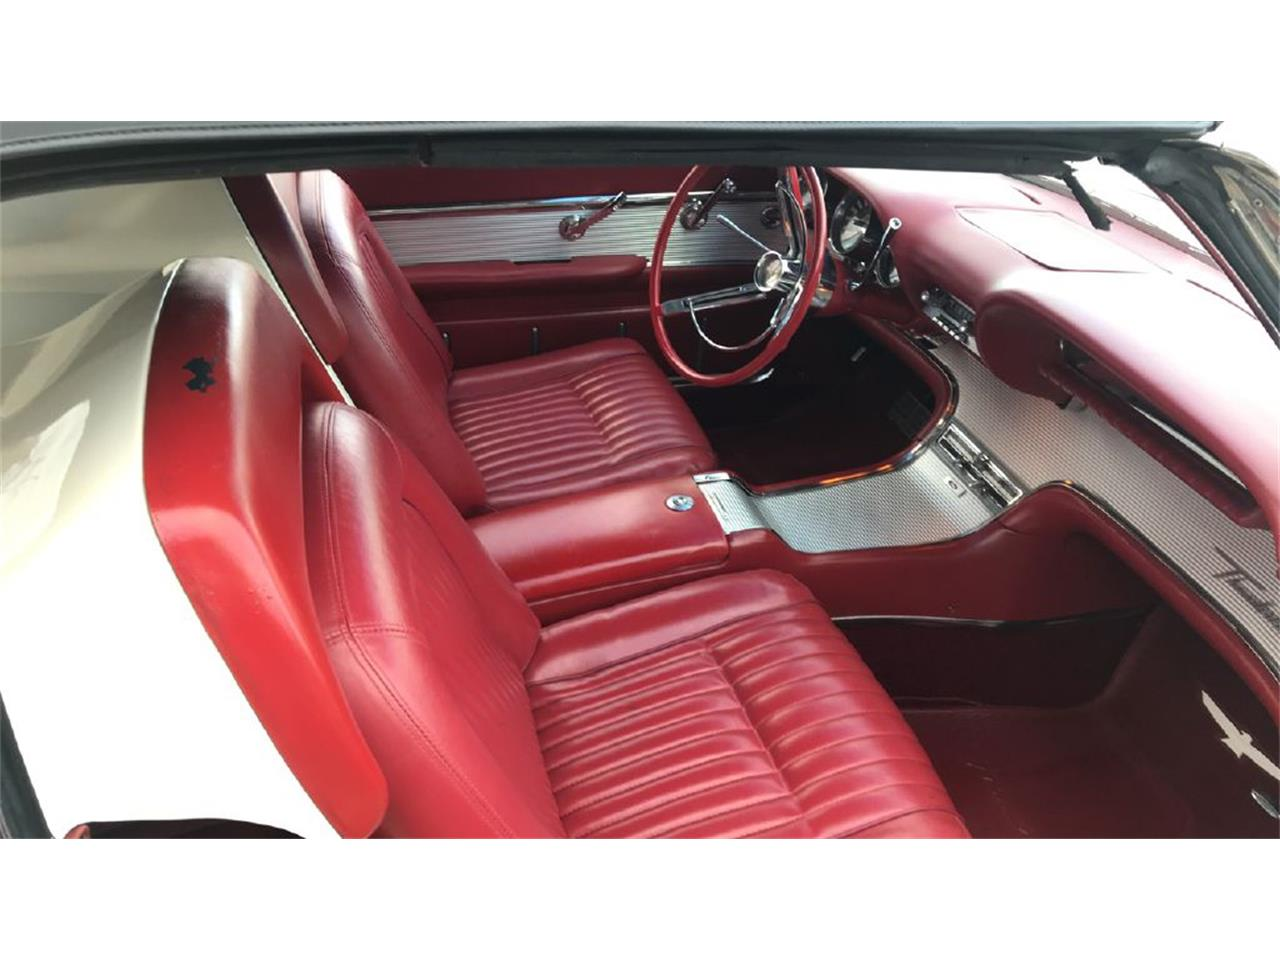 Large Picture of Classic '62 Ford Thunderbird - $39,500.00 - PJWV